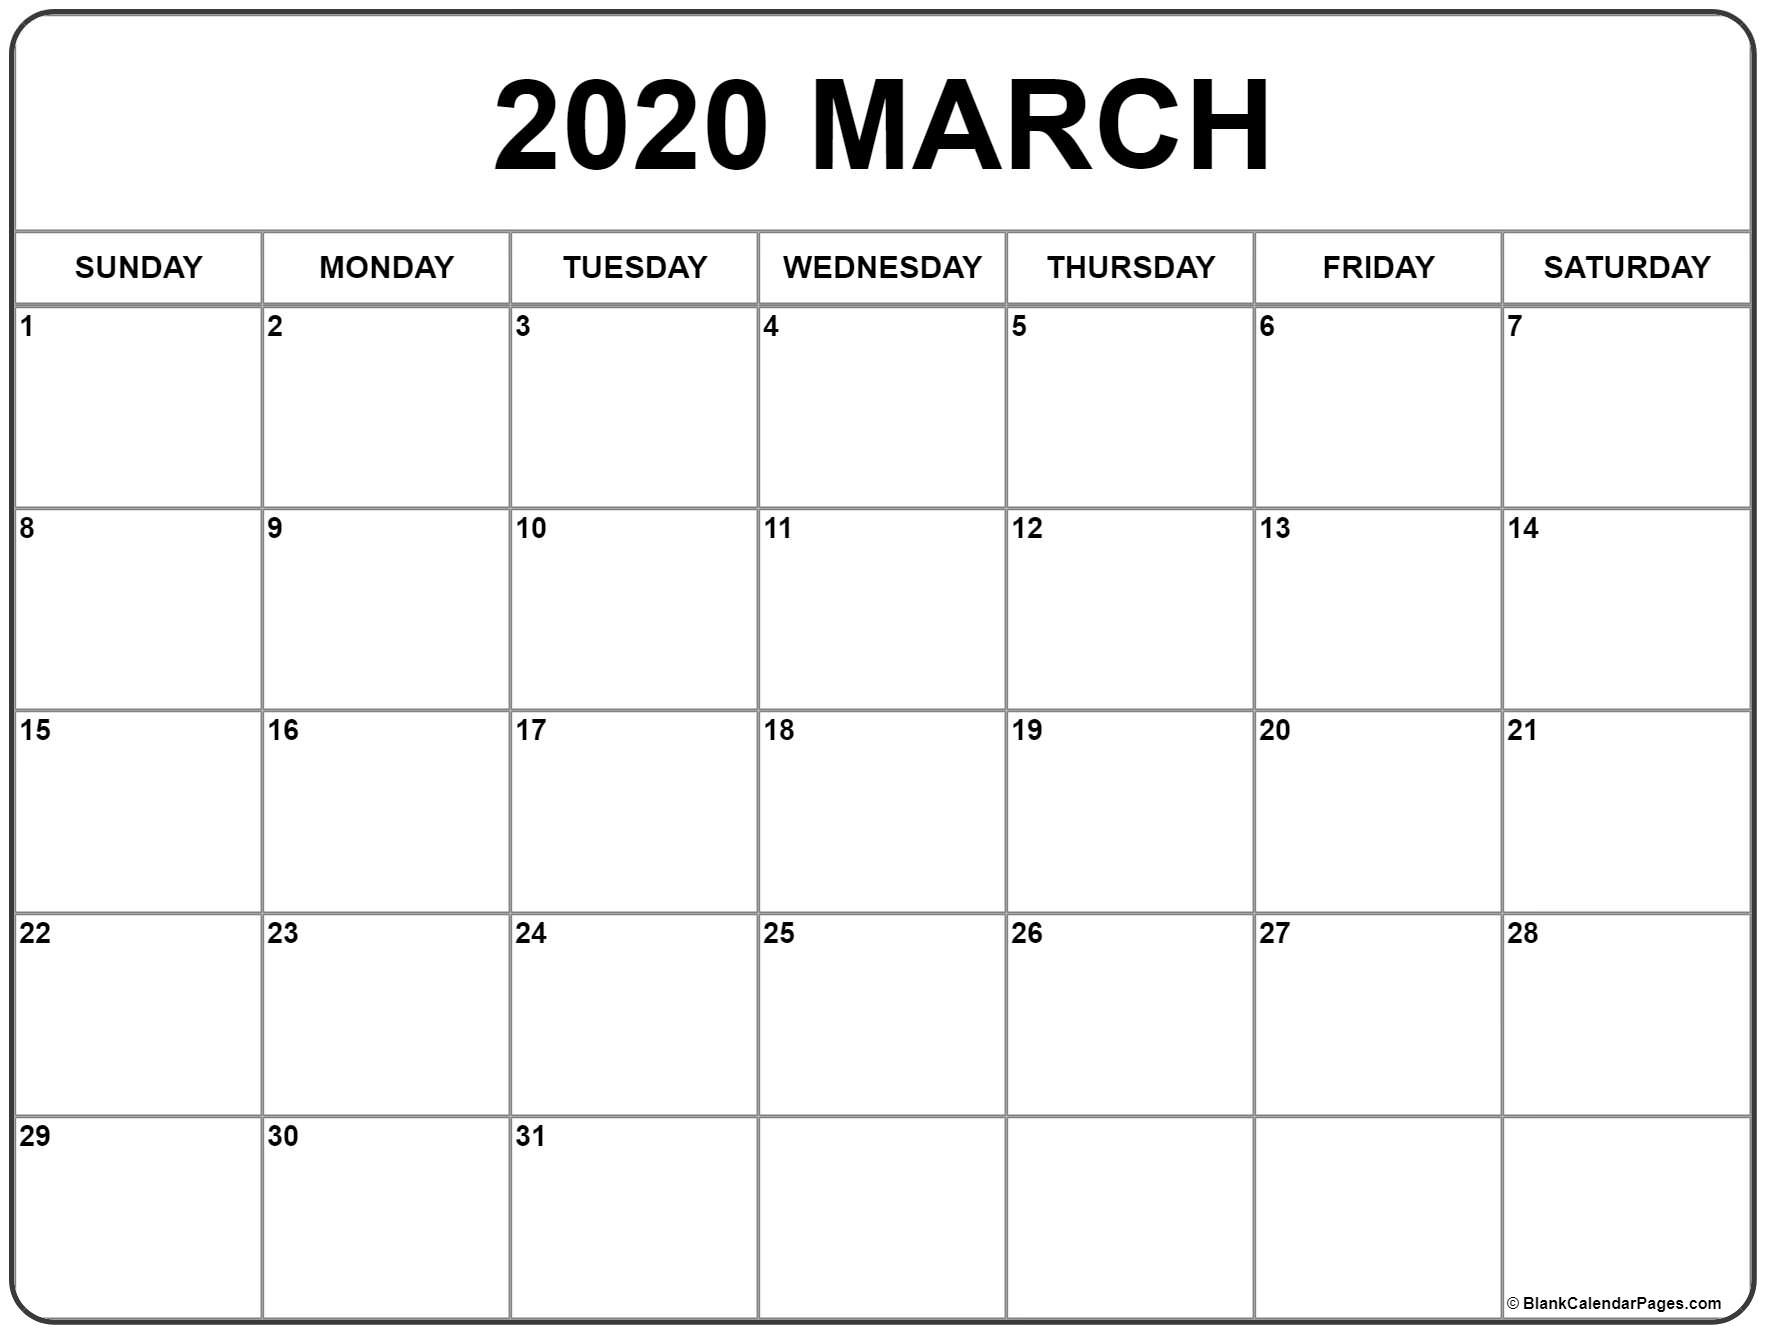 March 2020 Calendar | Free Printable Monthly Calendars  Free Printable Monthly Calendar March 2020